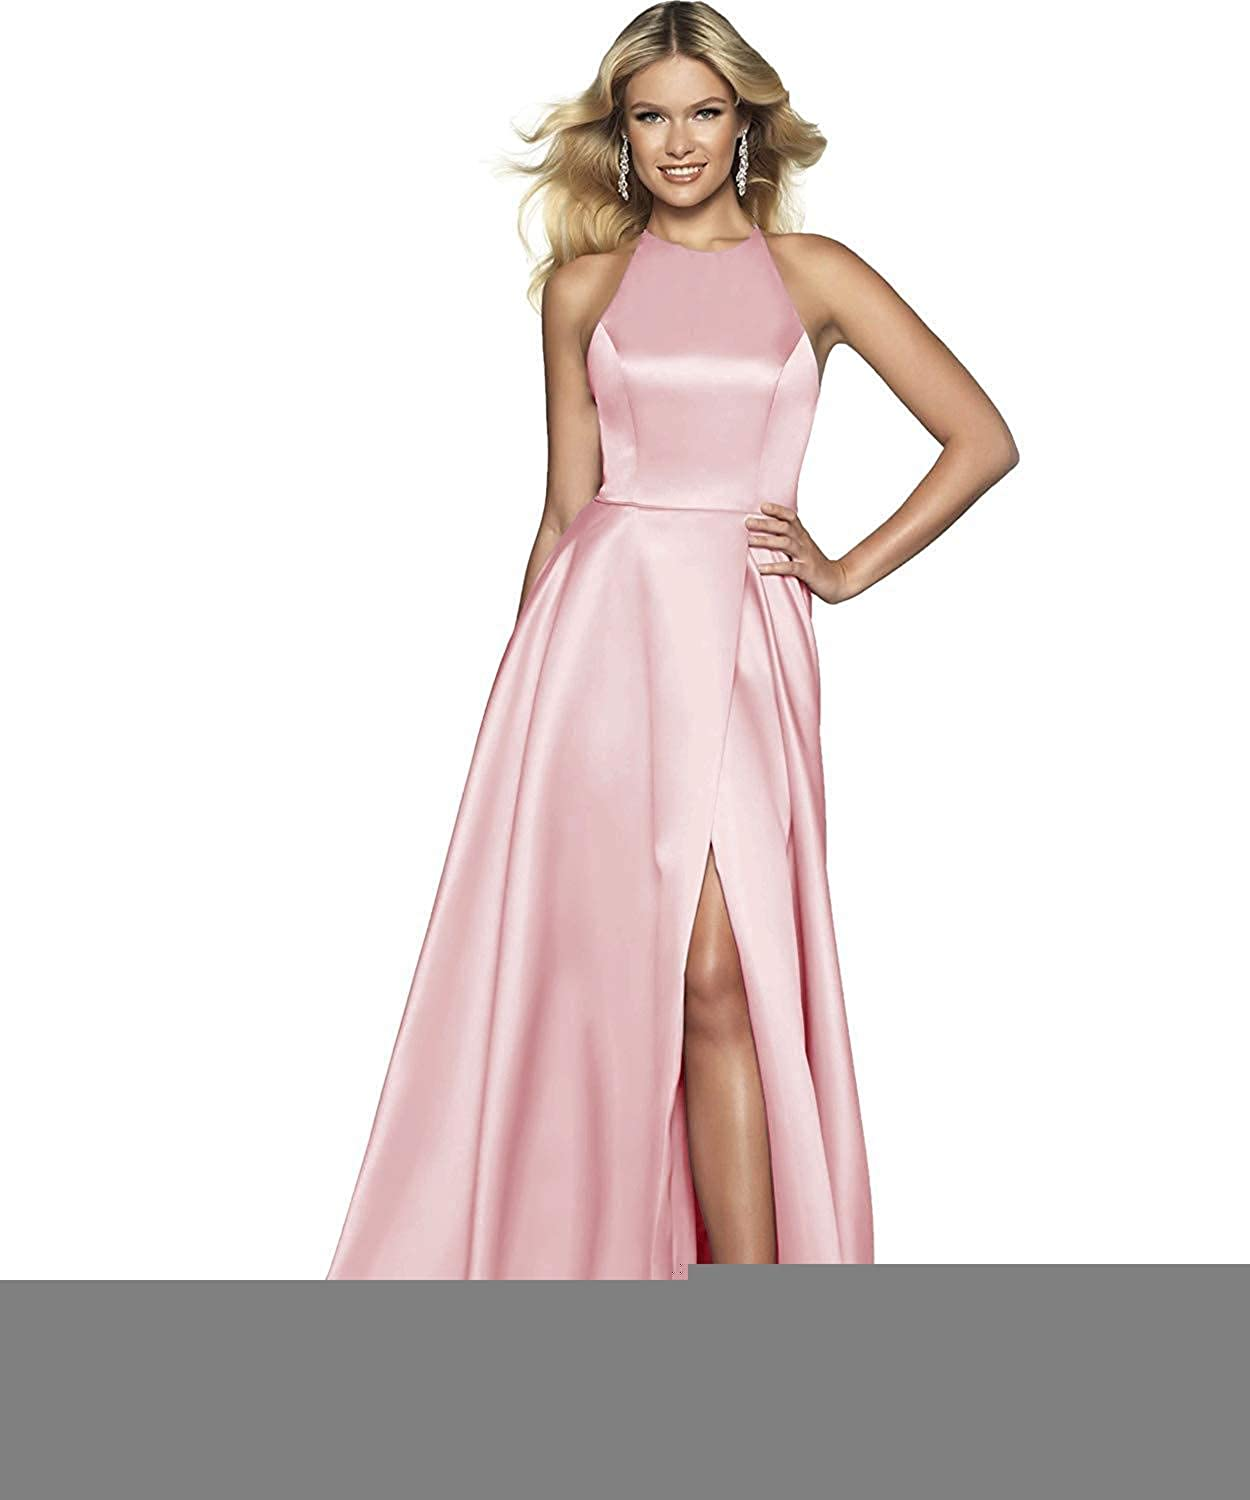 Pink NewFex Halter Prom Gowns with Pockets Satin Aline 2019 Split Formal Evening Dresses